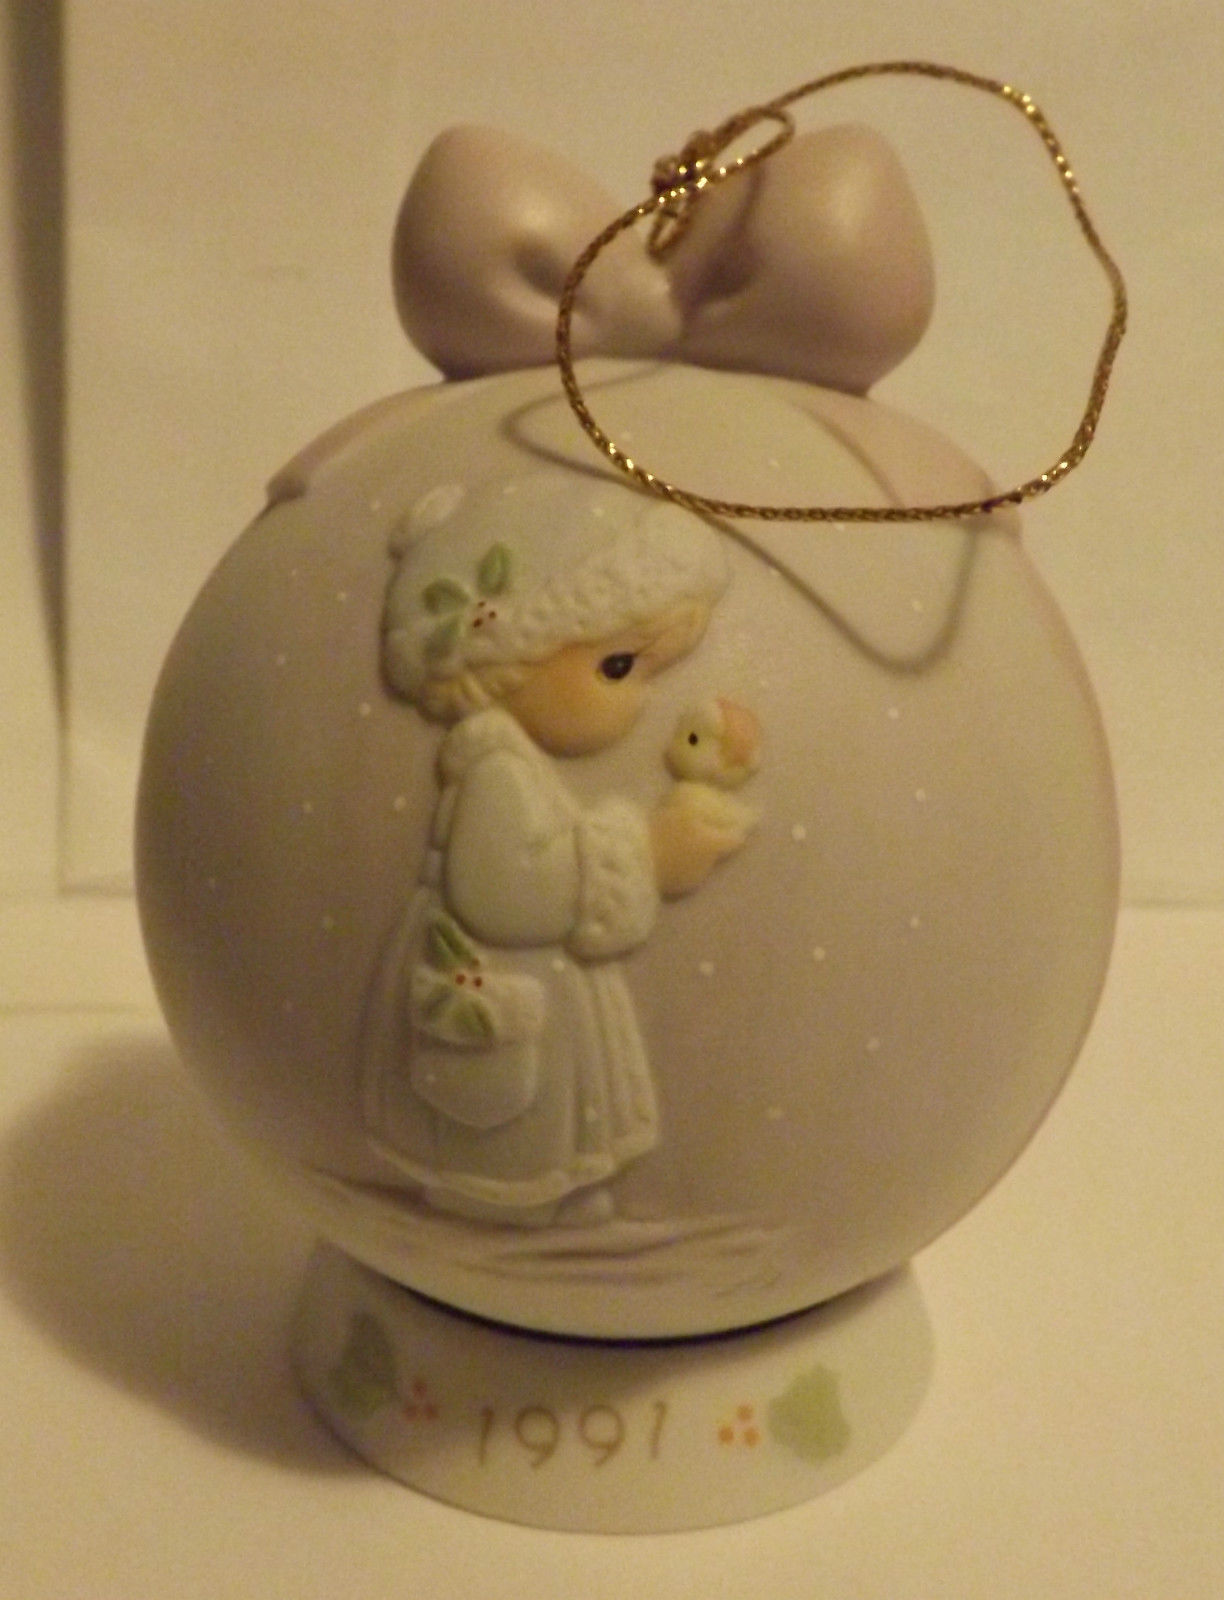 Precious Moments May Your Christmas Be Merry Special 1991 Issue Ornament image 1